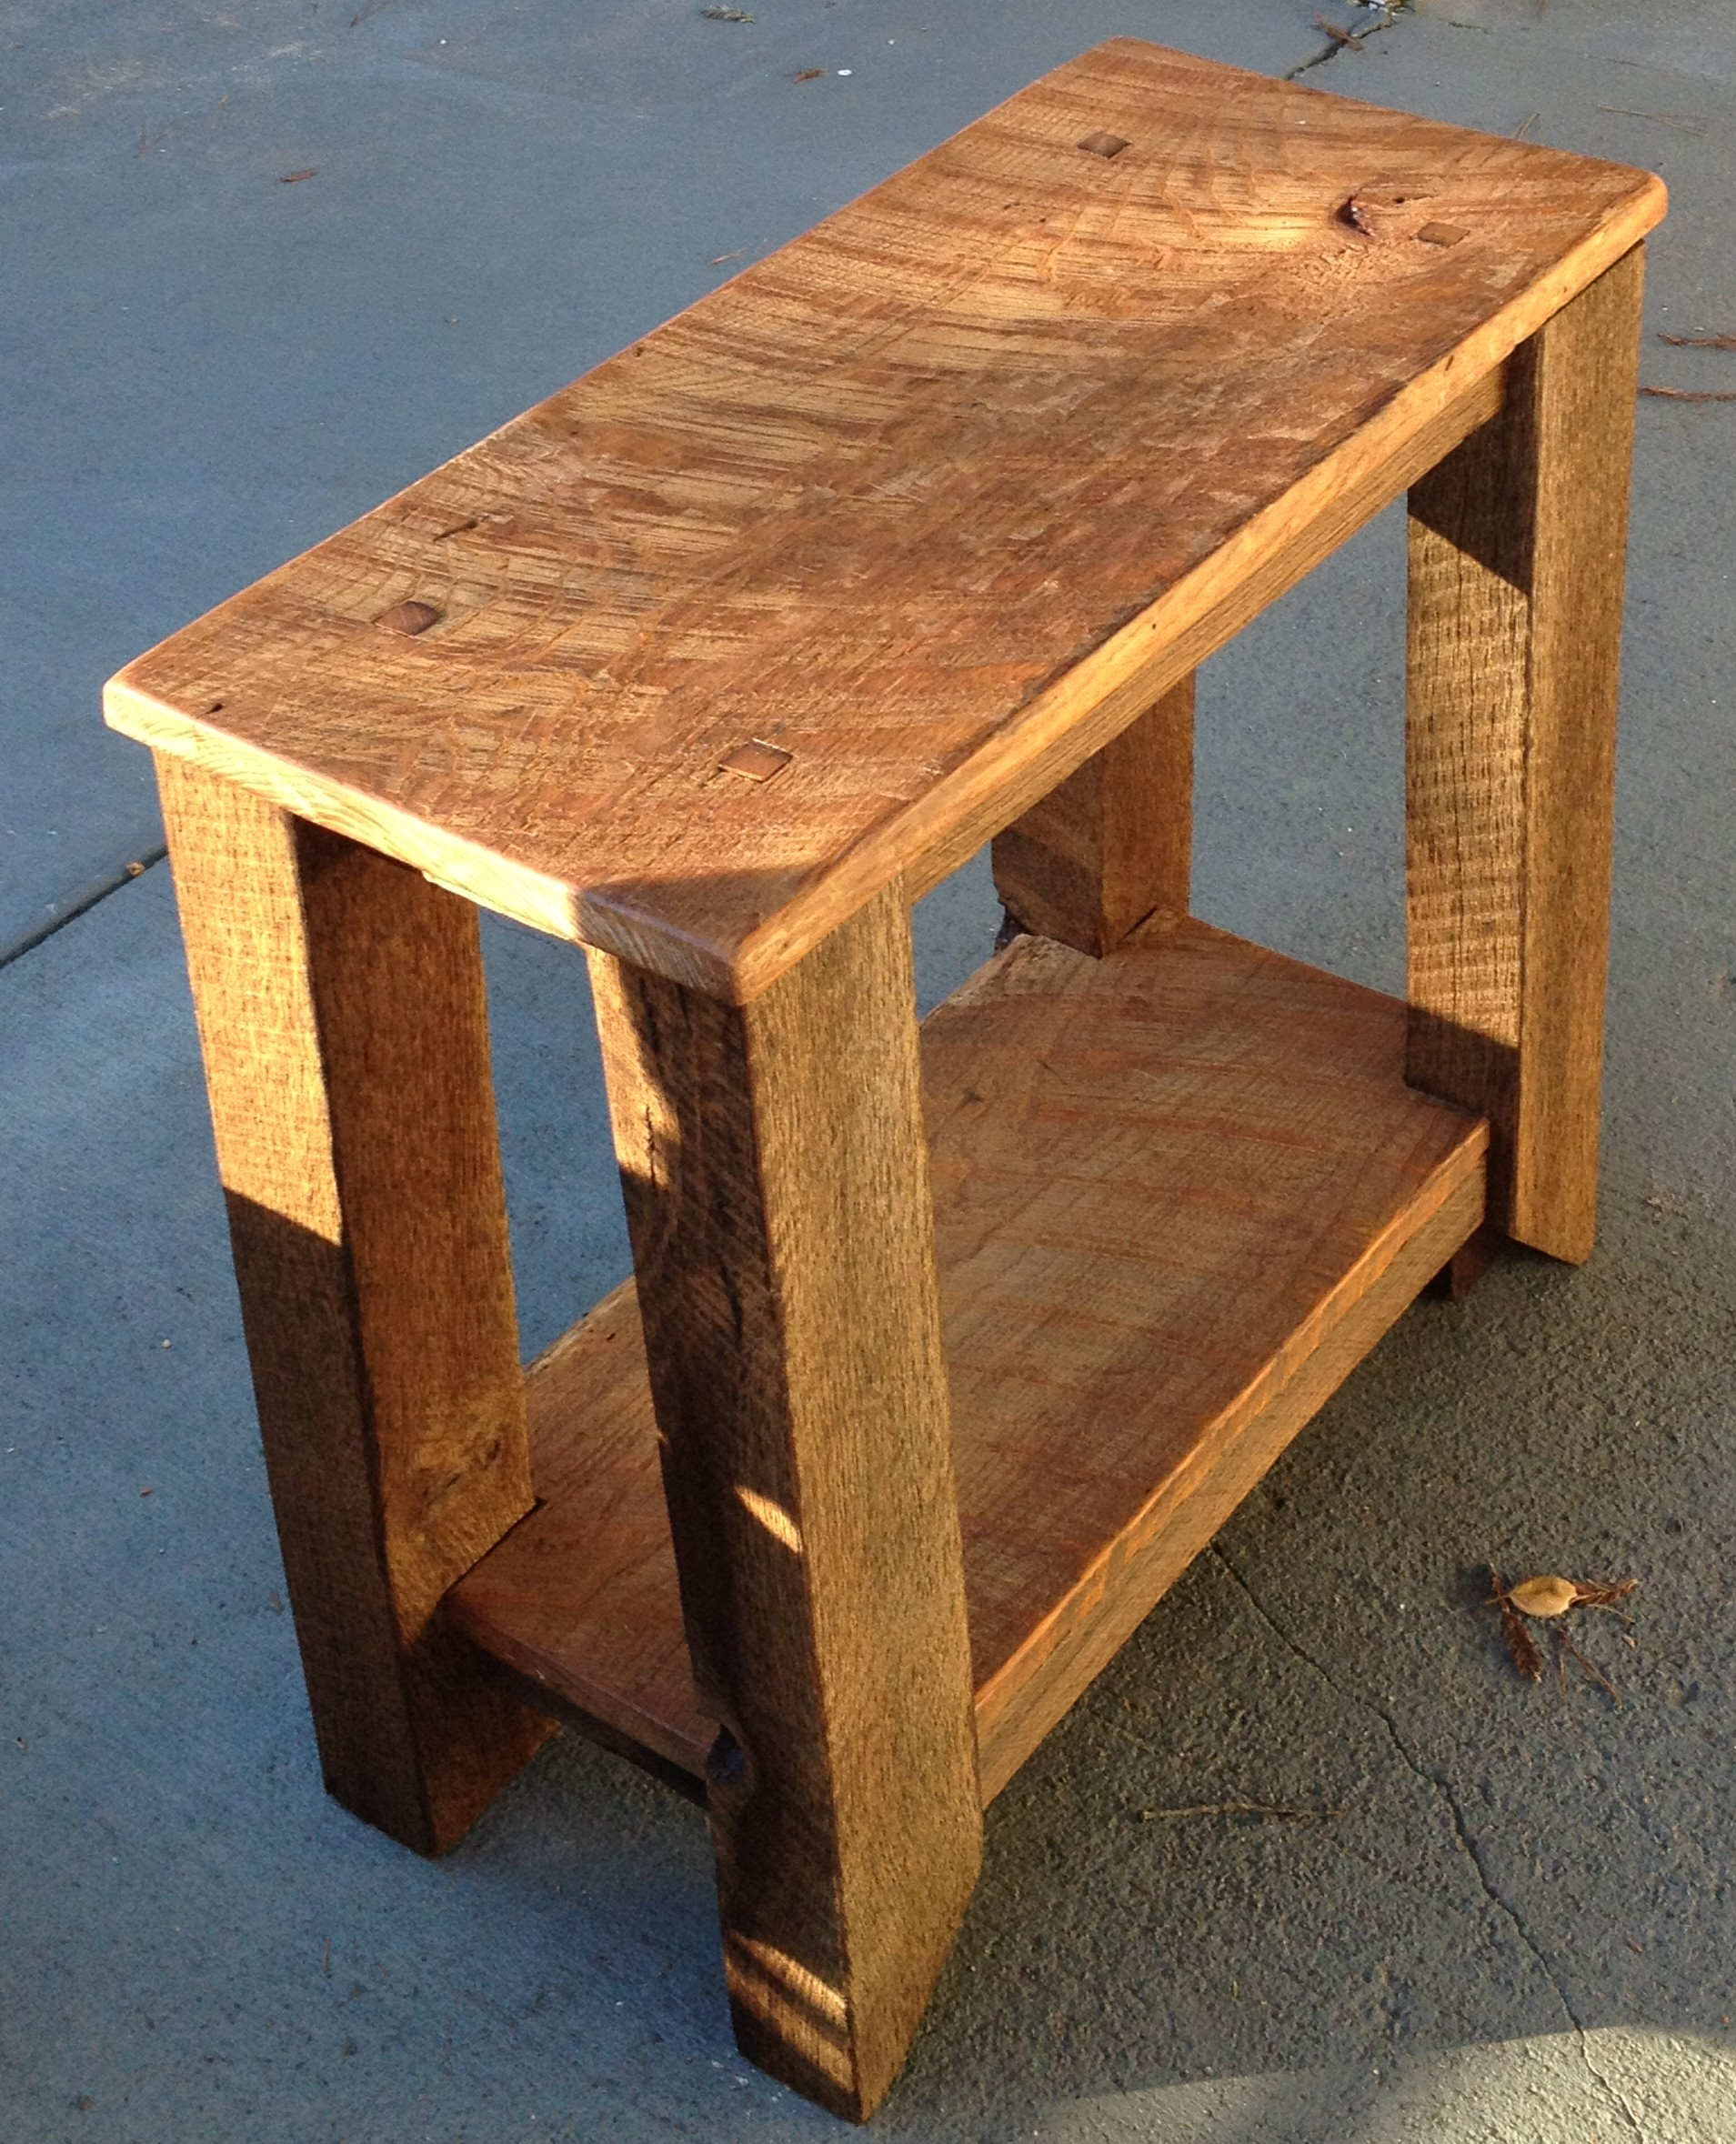 wood barn reclaimed barnwood woods images table quality qw furniture barns search barlette amish